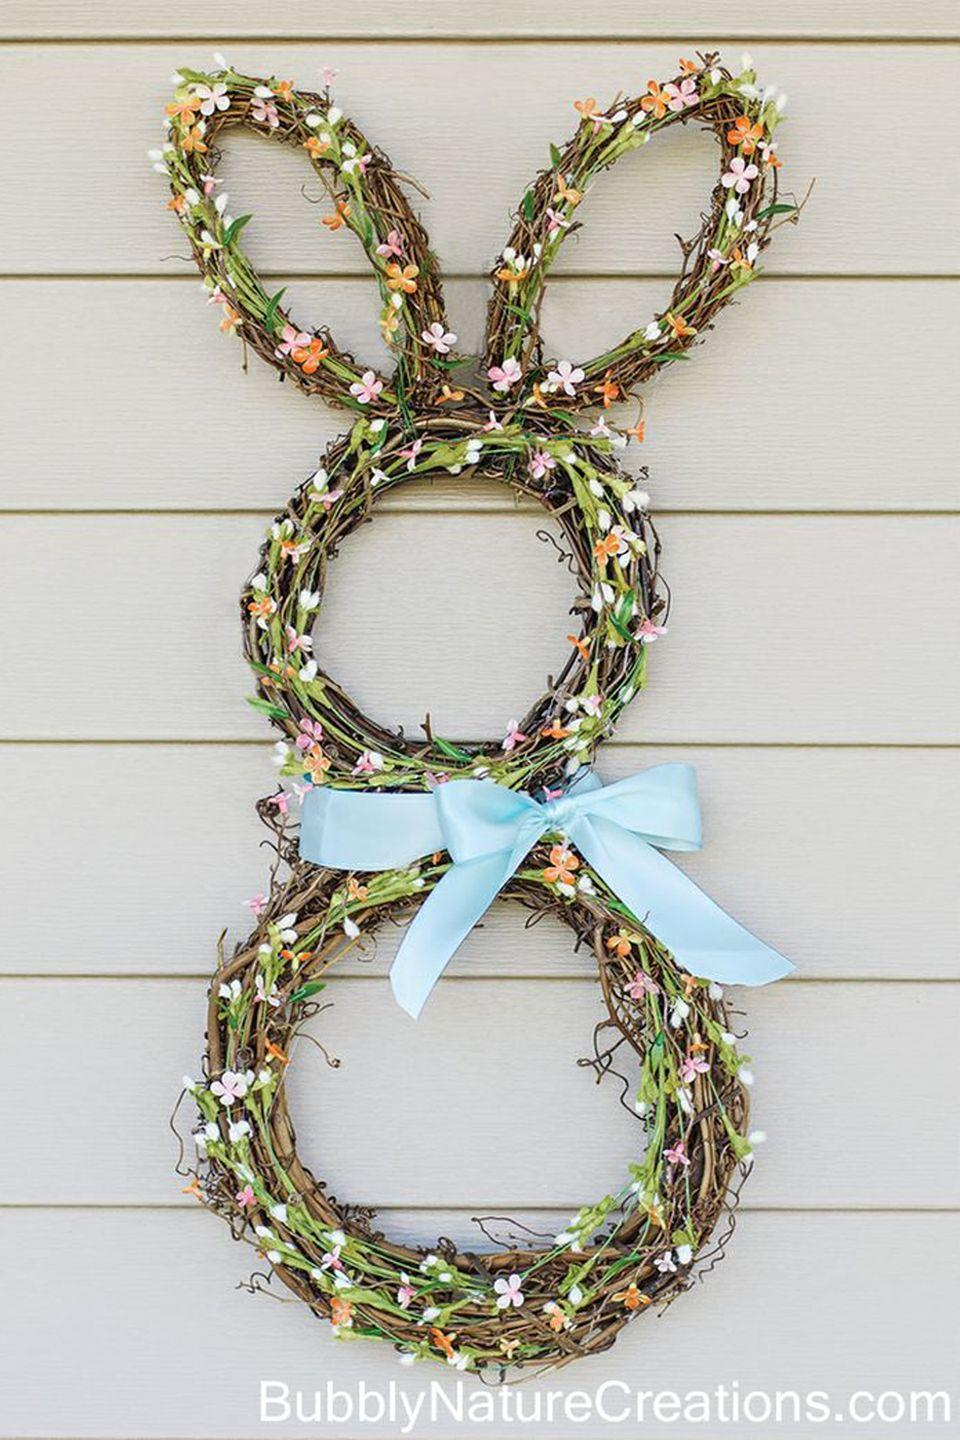 "<p>Why settle for an ordinary store-bought <a href=""https://www.countryliving.com/diy-crafts/g4088/easter-wreath/"" rel=""nofollow noopener"" target=""_blank"" data-ylk=""slk:Easter wreath"" class=""link rapid-noclick-resp"">Easter wreath</a>, when you could craft this adorable, flower-covered bunny? This sweet fixture will be the perfect statement for your front door this holiday.</p><p><strong>Get the tutorial at <a href=""http://sprinklesomefun.com/2013/03/bunny-wreath.html"" rel=""nofollow noopener"" target=""_blank"" data-ylk=""slk:Sprinkle Some Fun"" class=""link rapid-noclick-resp"">Sprinkle Some Fun</a>.</strong></p>"